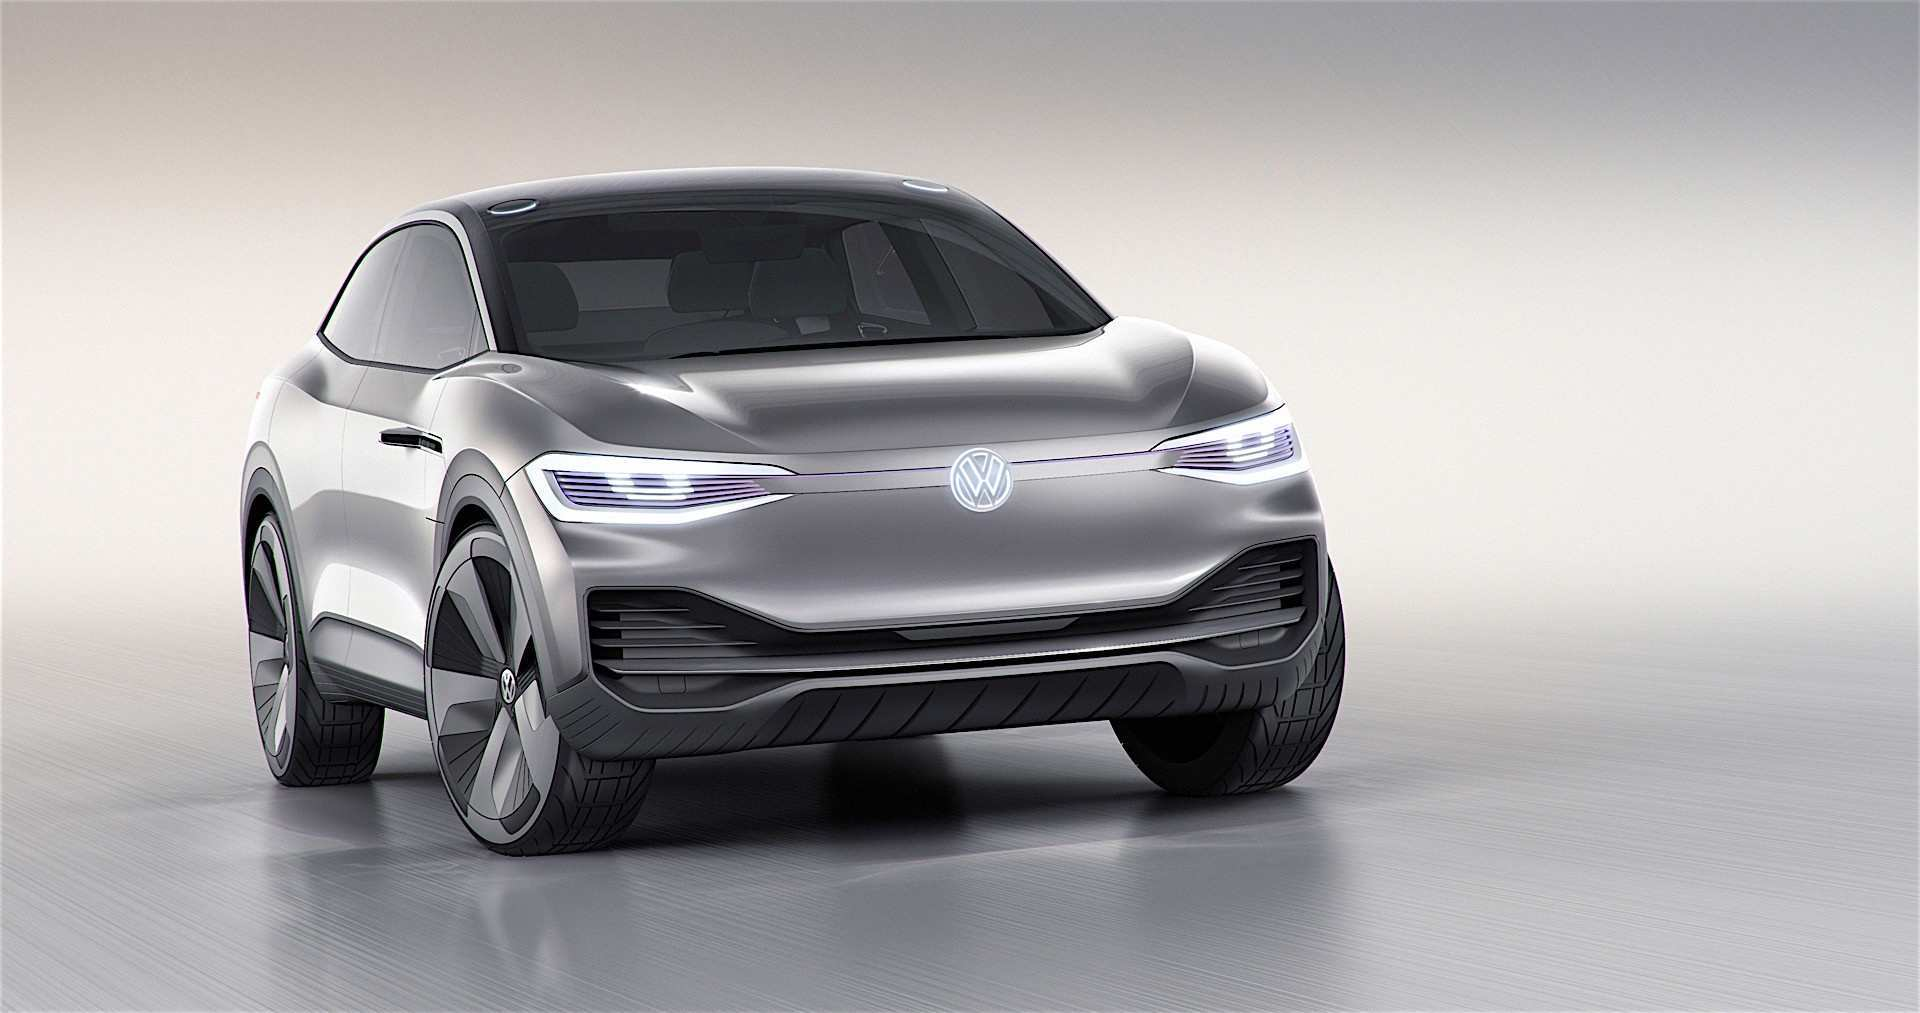 37 All New Crossover Volkswagen 2019 Concept Images for Crossover Volkswagen 2019 Concept